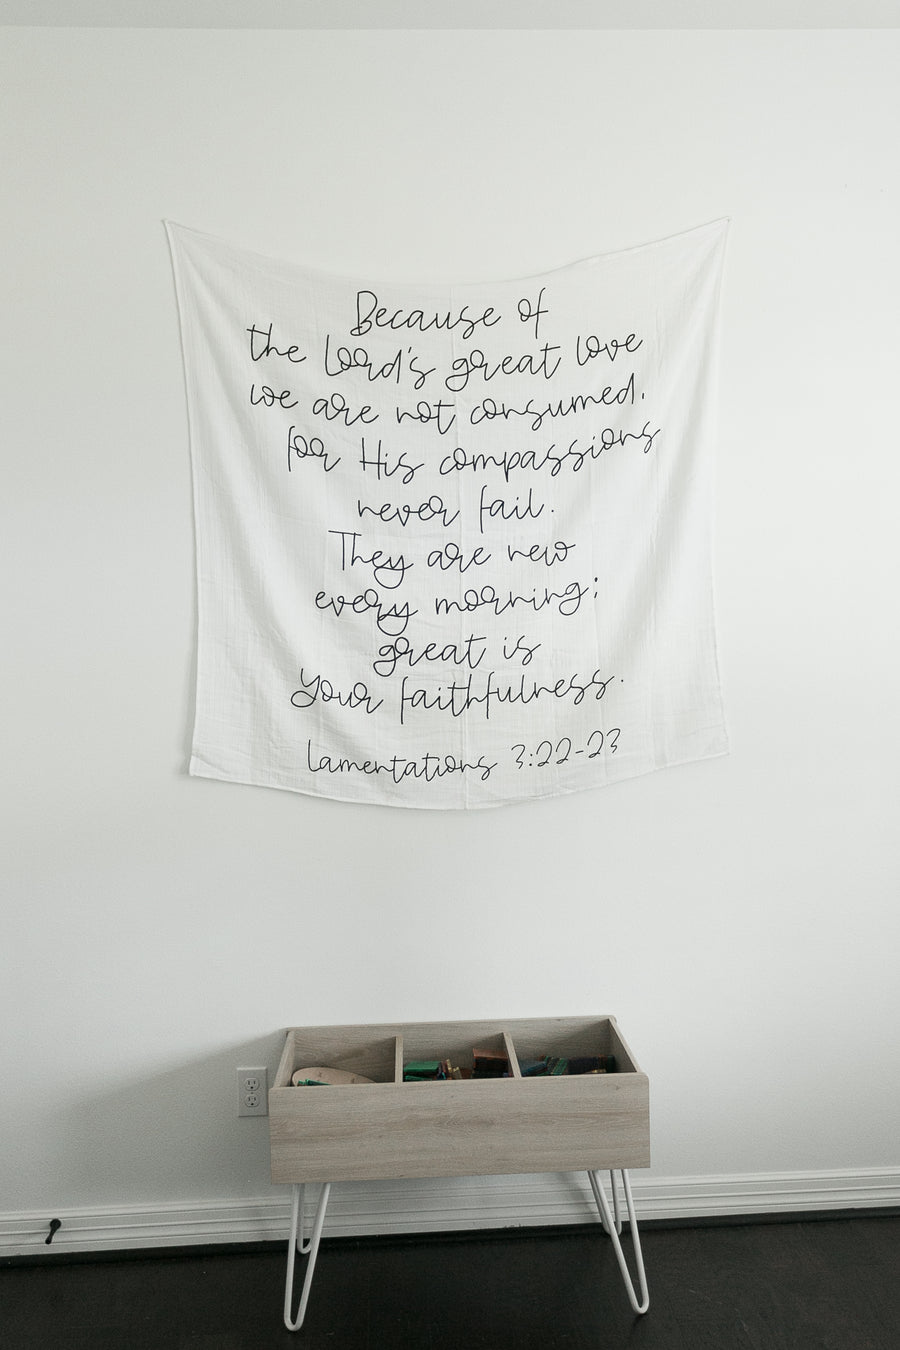 *NEW* Organic Cotton Muslin Swaddle Blanket + Wall Art - Because of the Lord's great love we are not consumed,     for His compassions never fail. They are new every morning; great is Your faithfulness. Lamentations 3:22-23